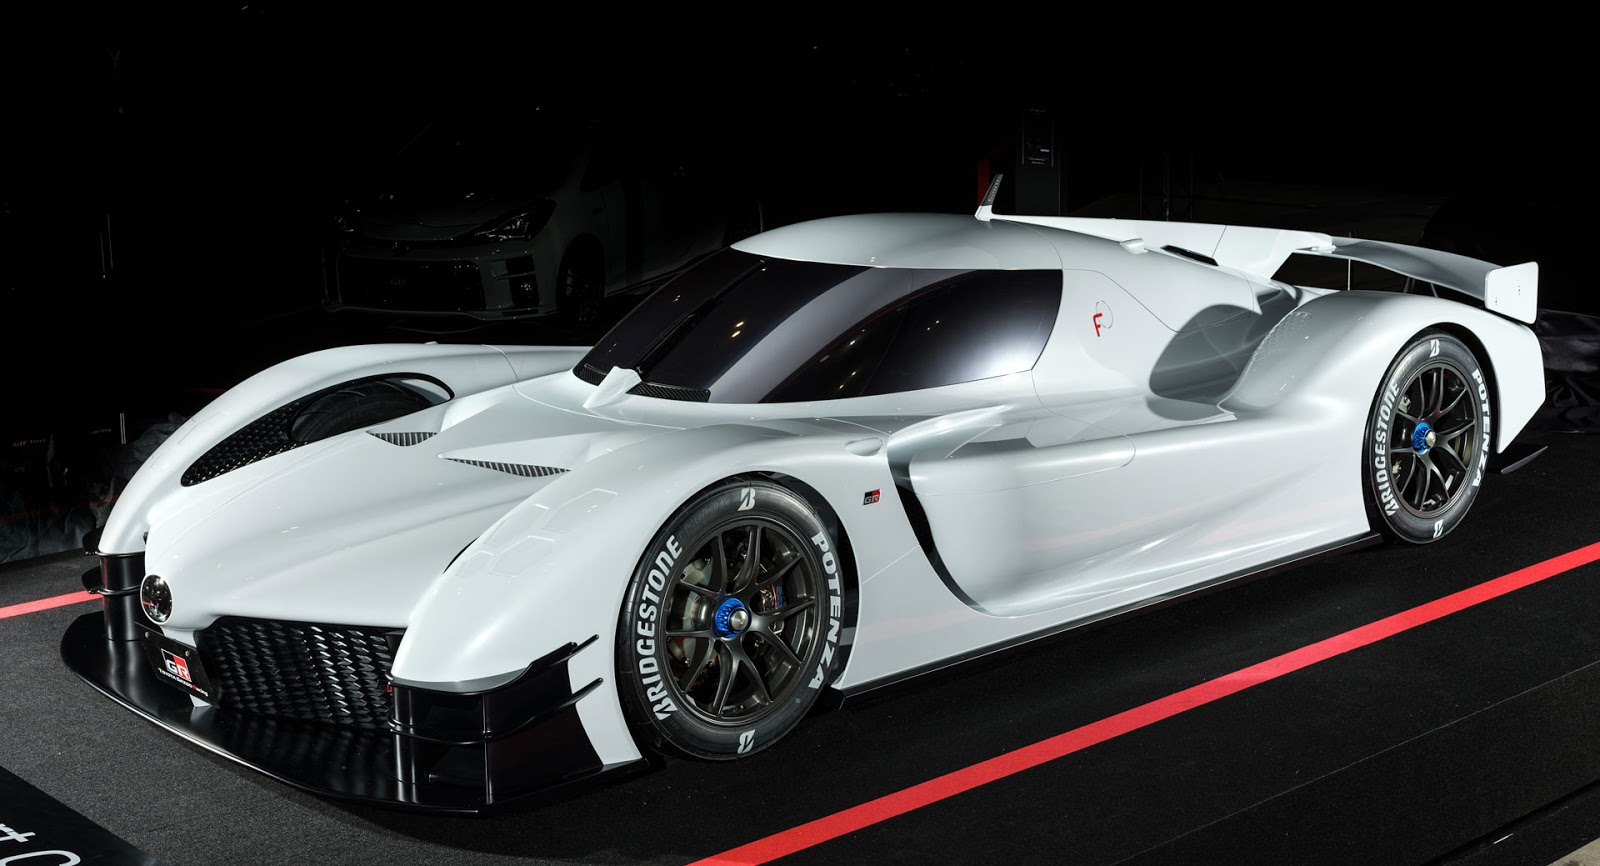 Toyota Gazoo GR Super Sport Concept hints at Supra hybrid powertrain